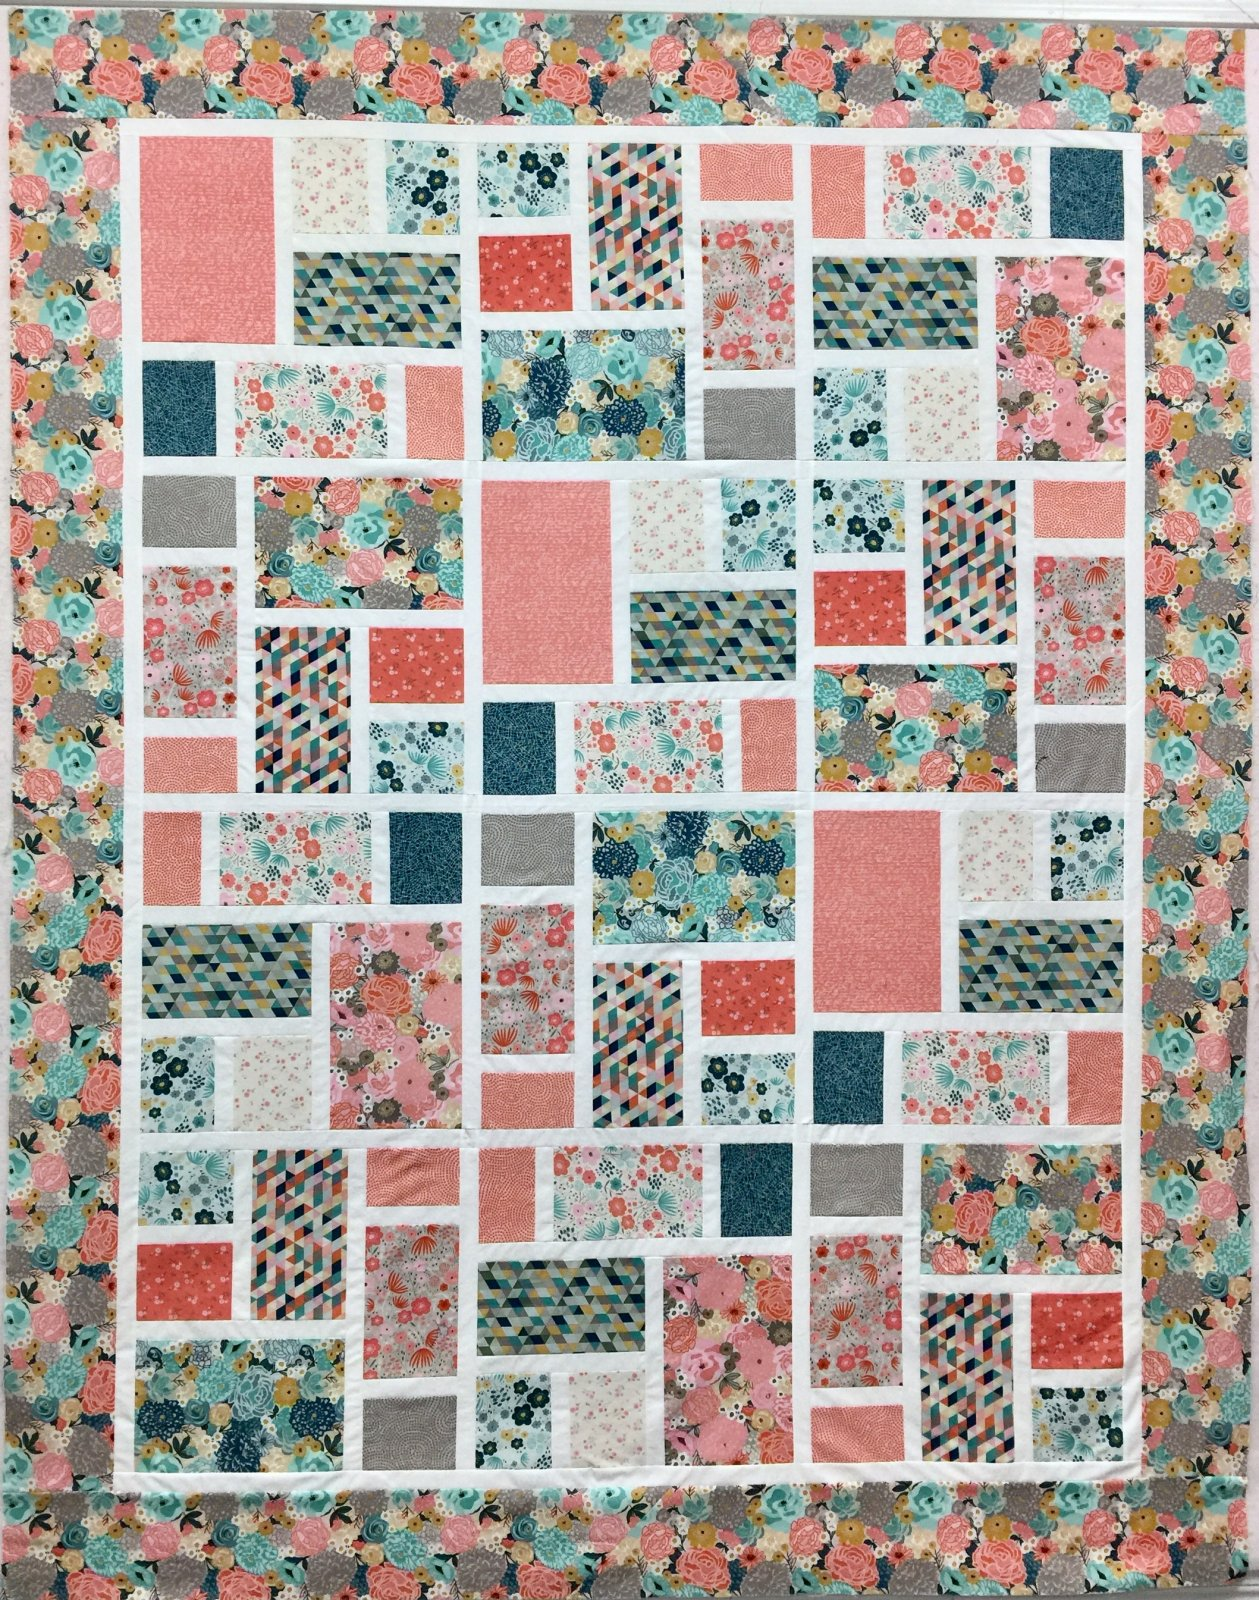 Around the Block with Ava Rosa Quilt Kit